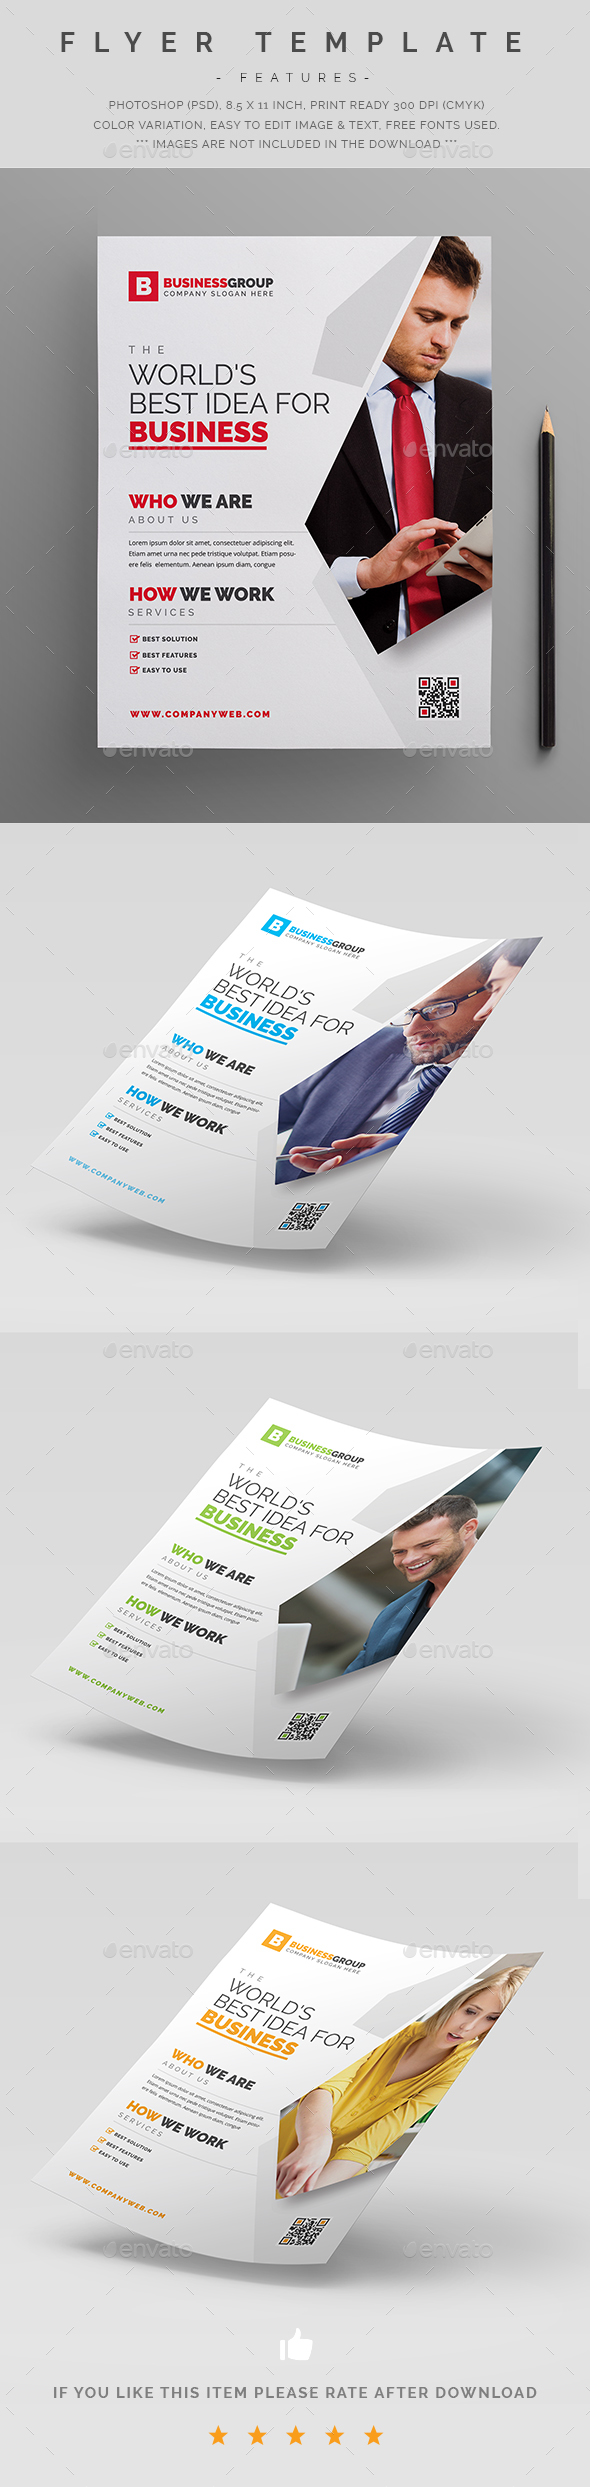 Corporate Flyer Template PSD   Editorial   Pinterest   Material ...